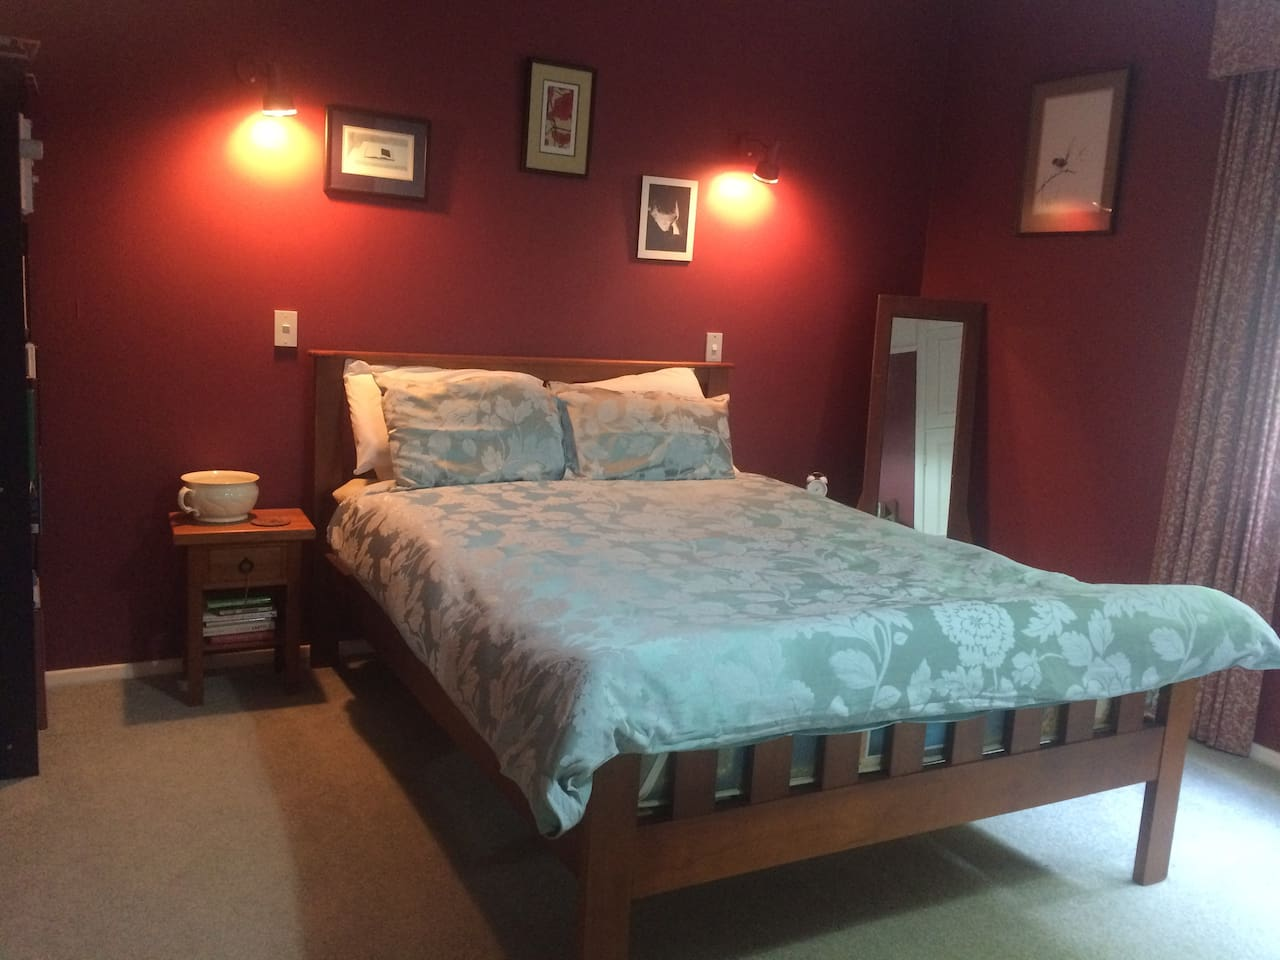 Peaceful double room with queen bed and plenty of storage for luggage.